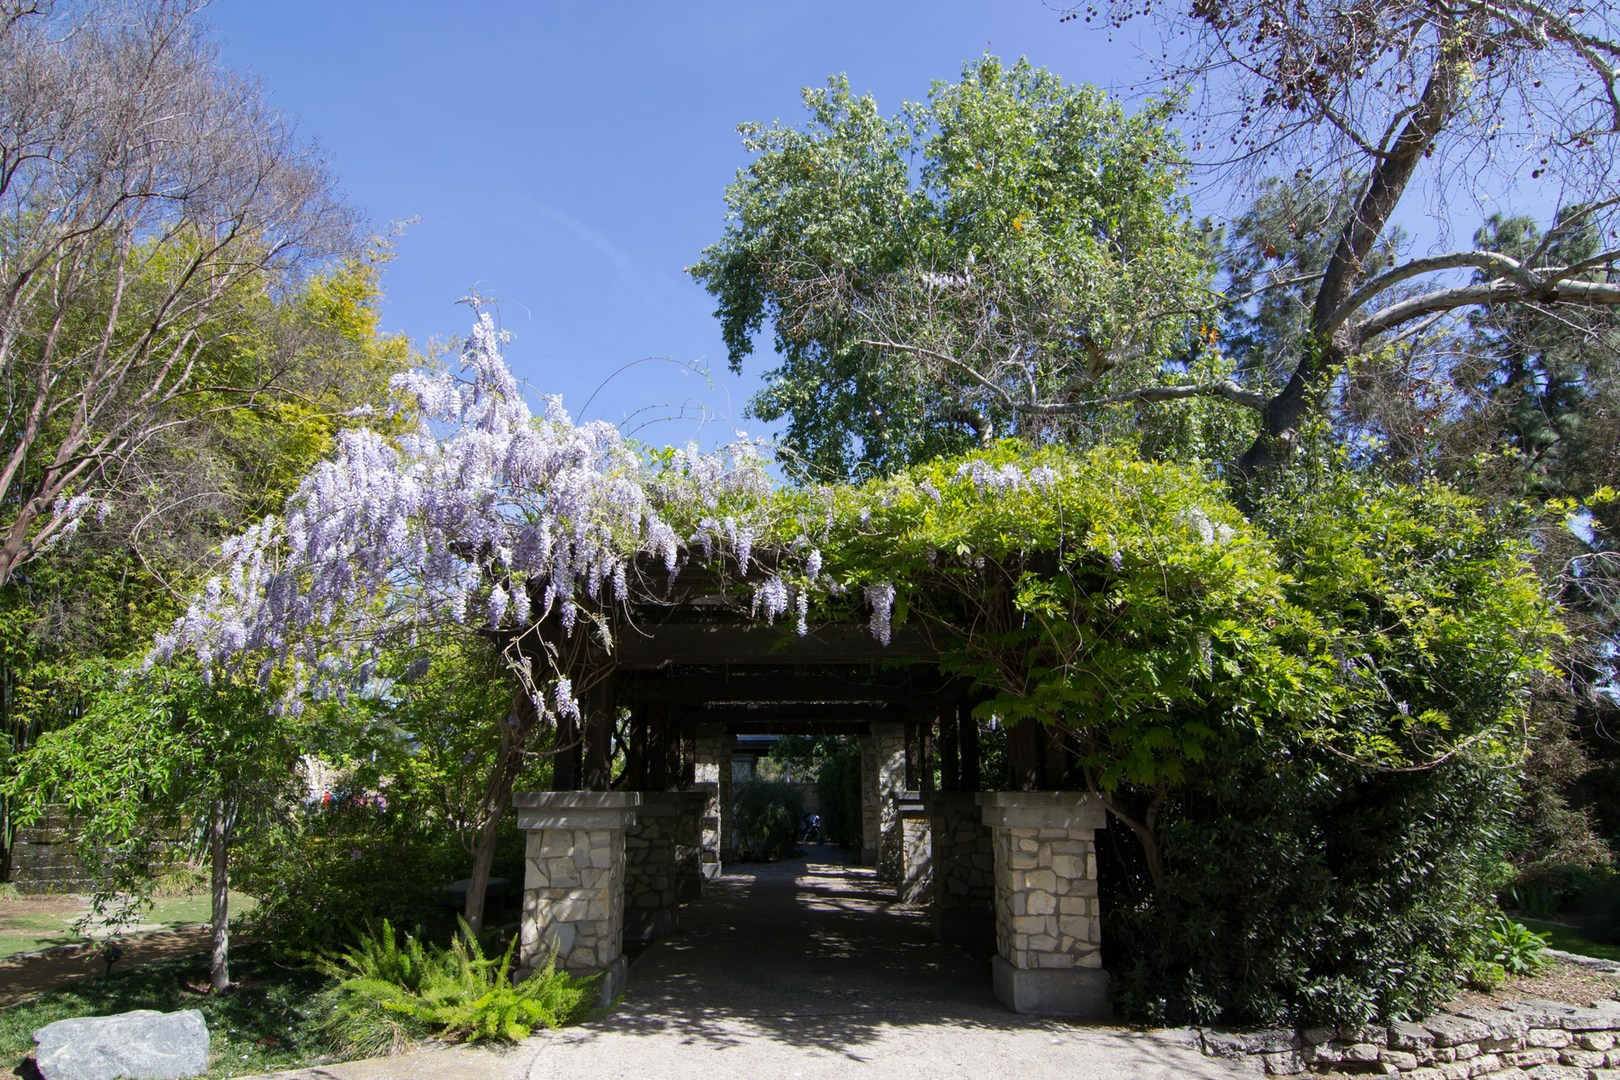 ... Wisteria On An Arbor At Los Angeles County Arboretum.  Botanical Gardens  Blooming Across The ...